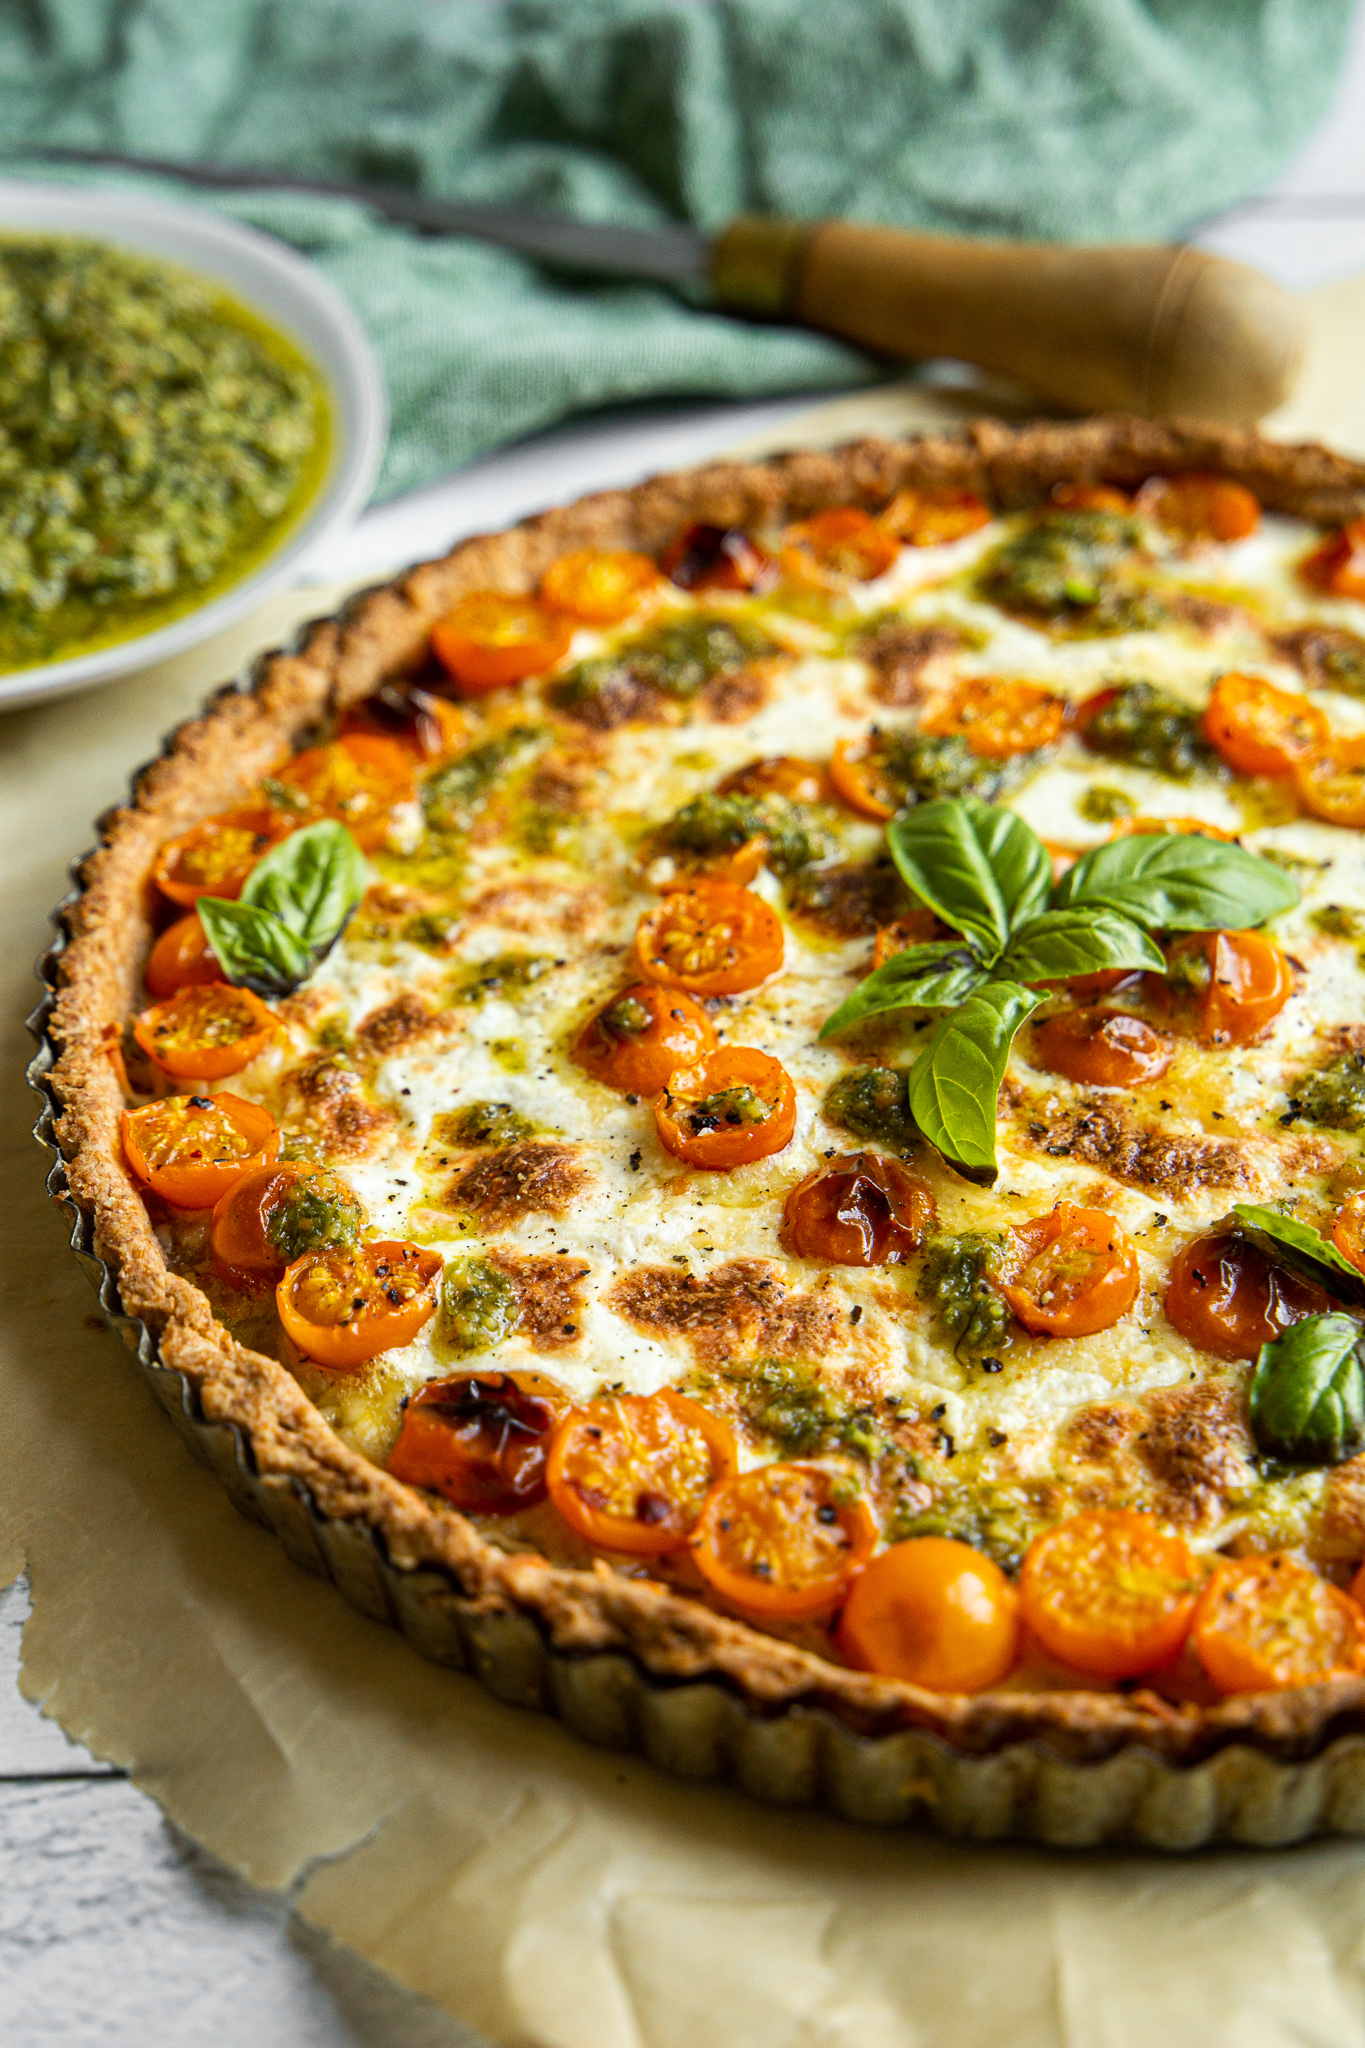 Tomato Tart - Bascially pizza, but with more butter.